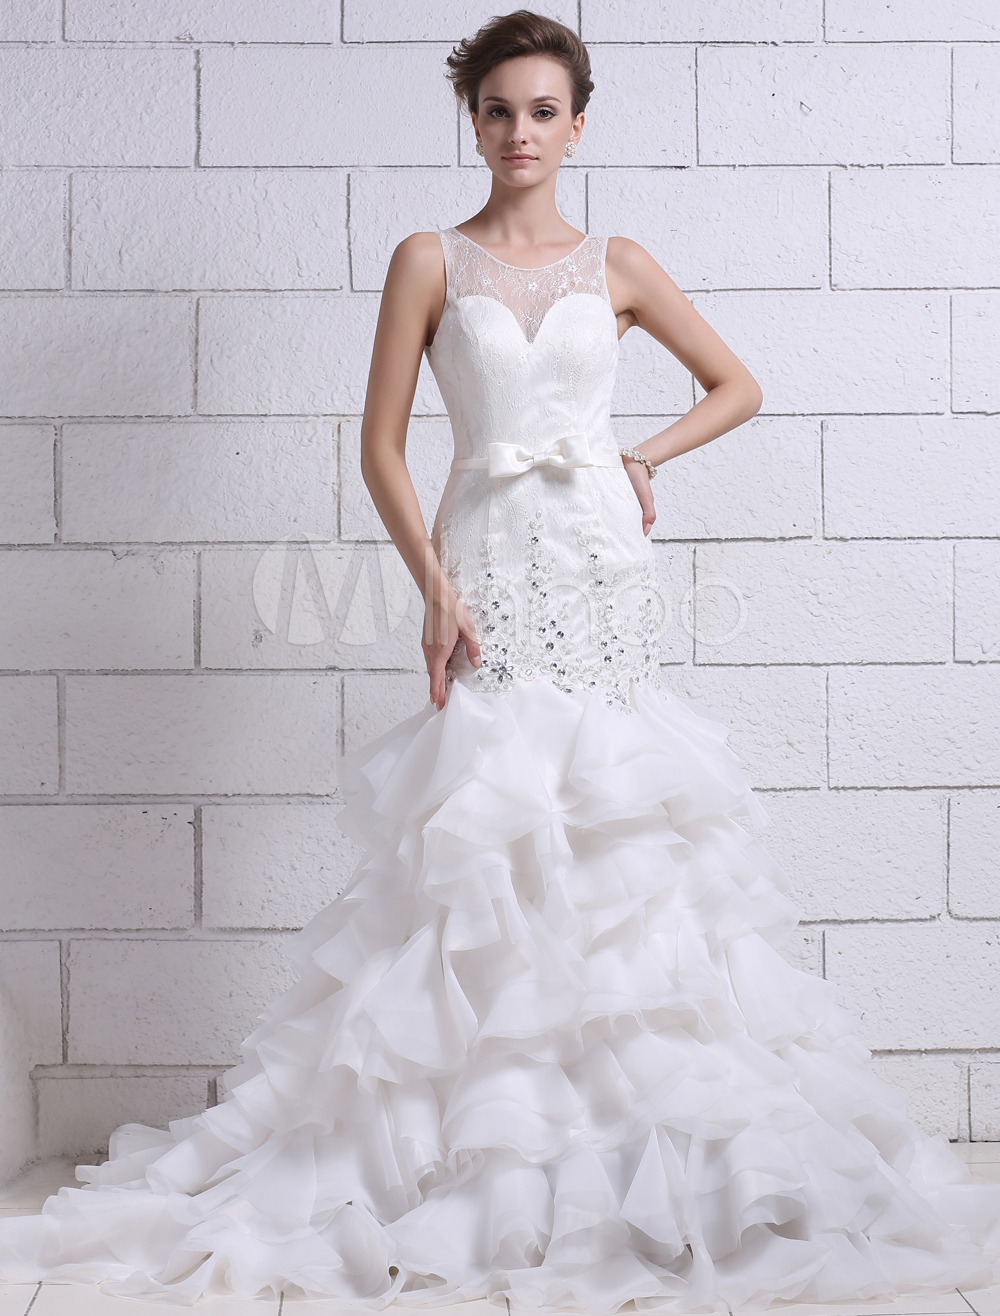 China Wholesale Clothes - Great discounts for wedding dresses